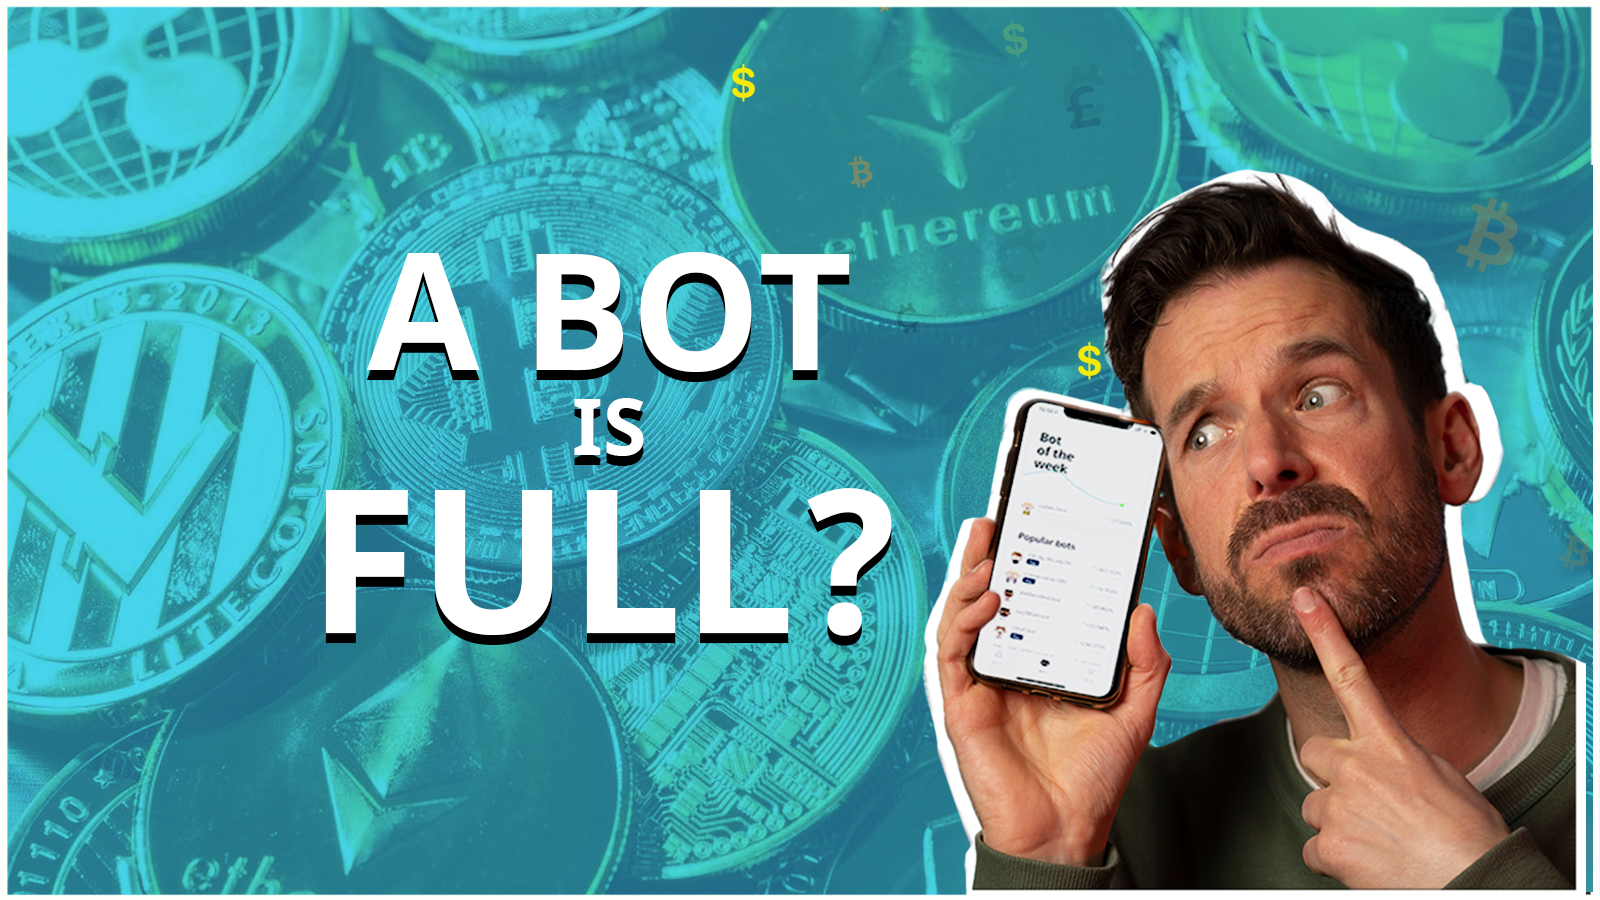 What does a full bot mean?